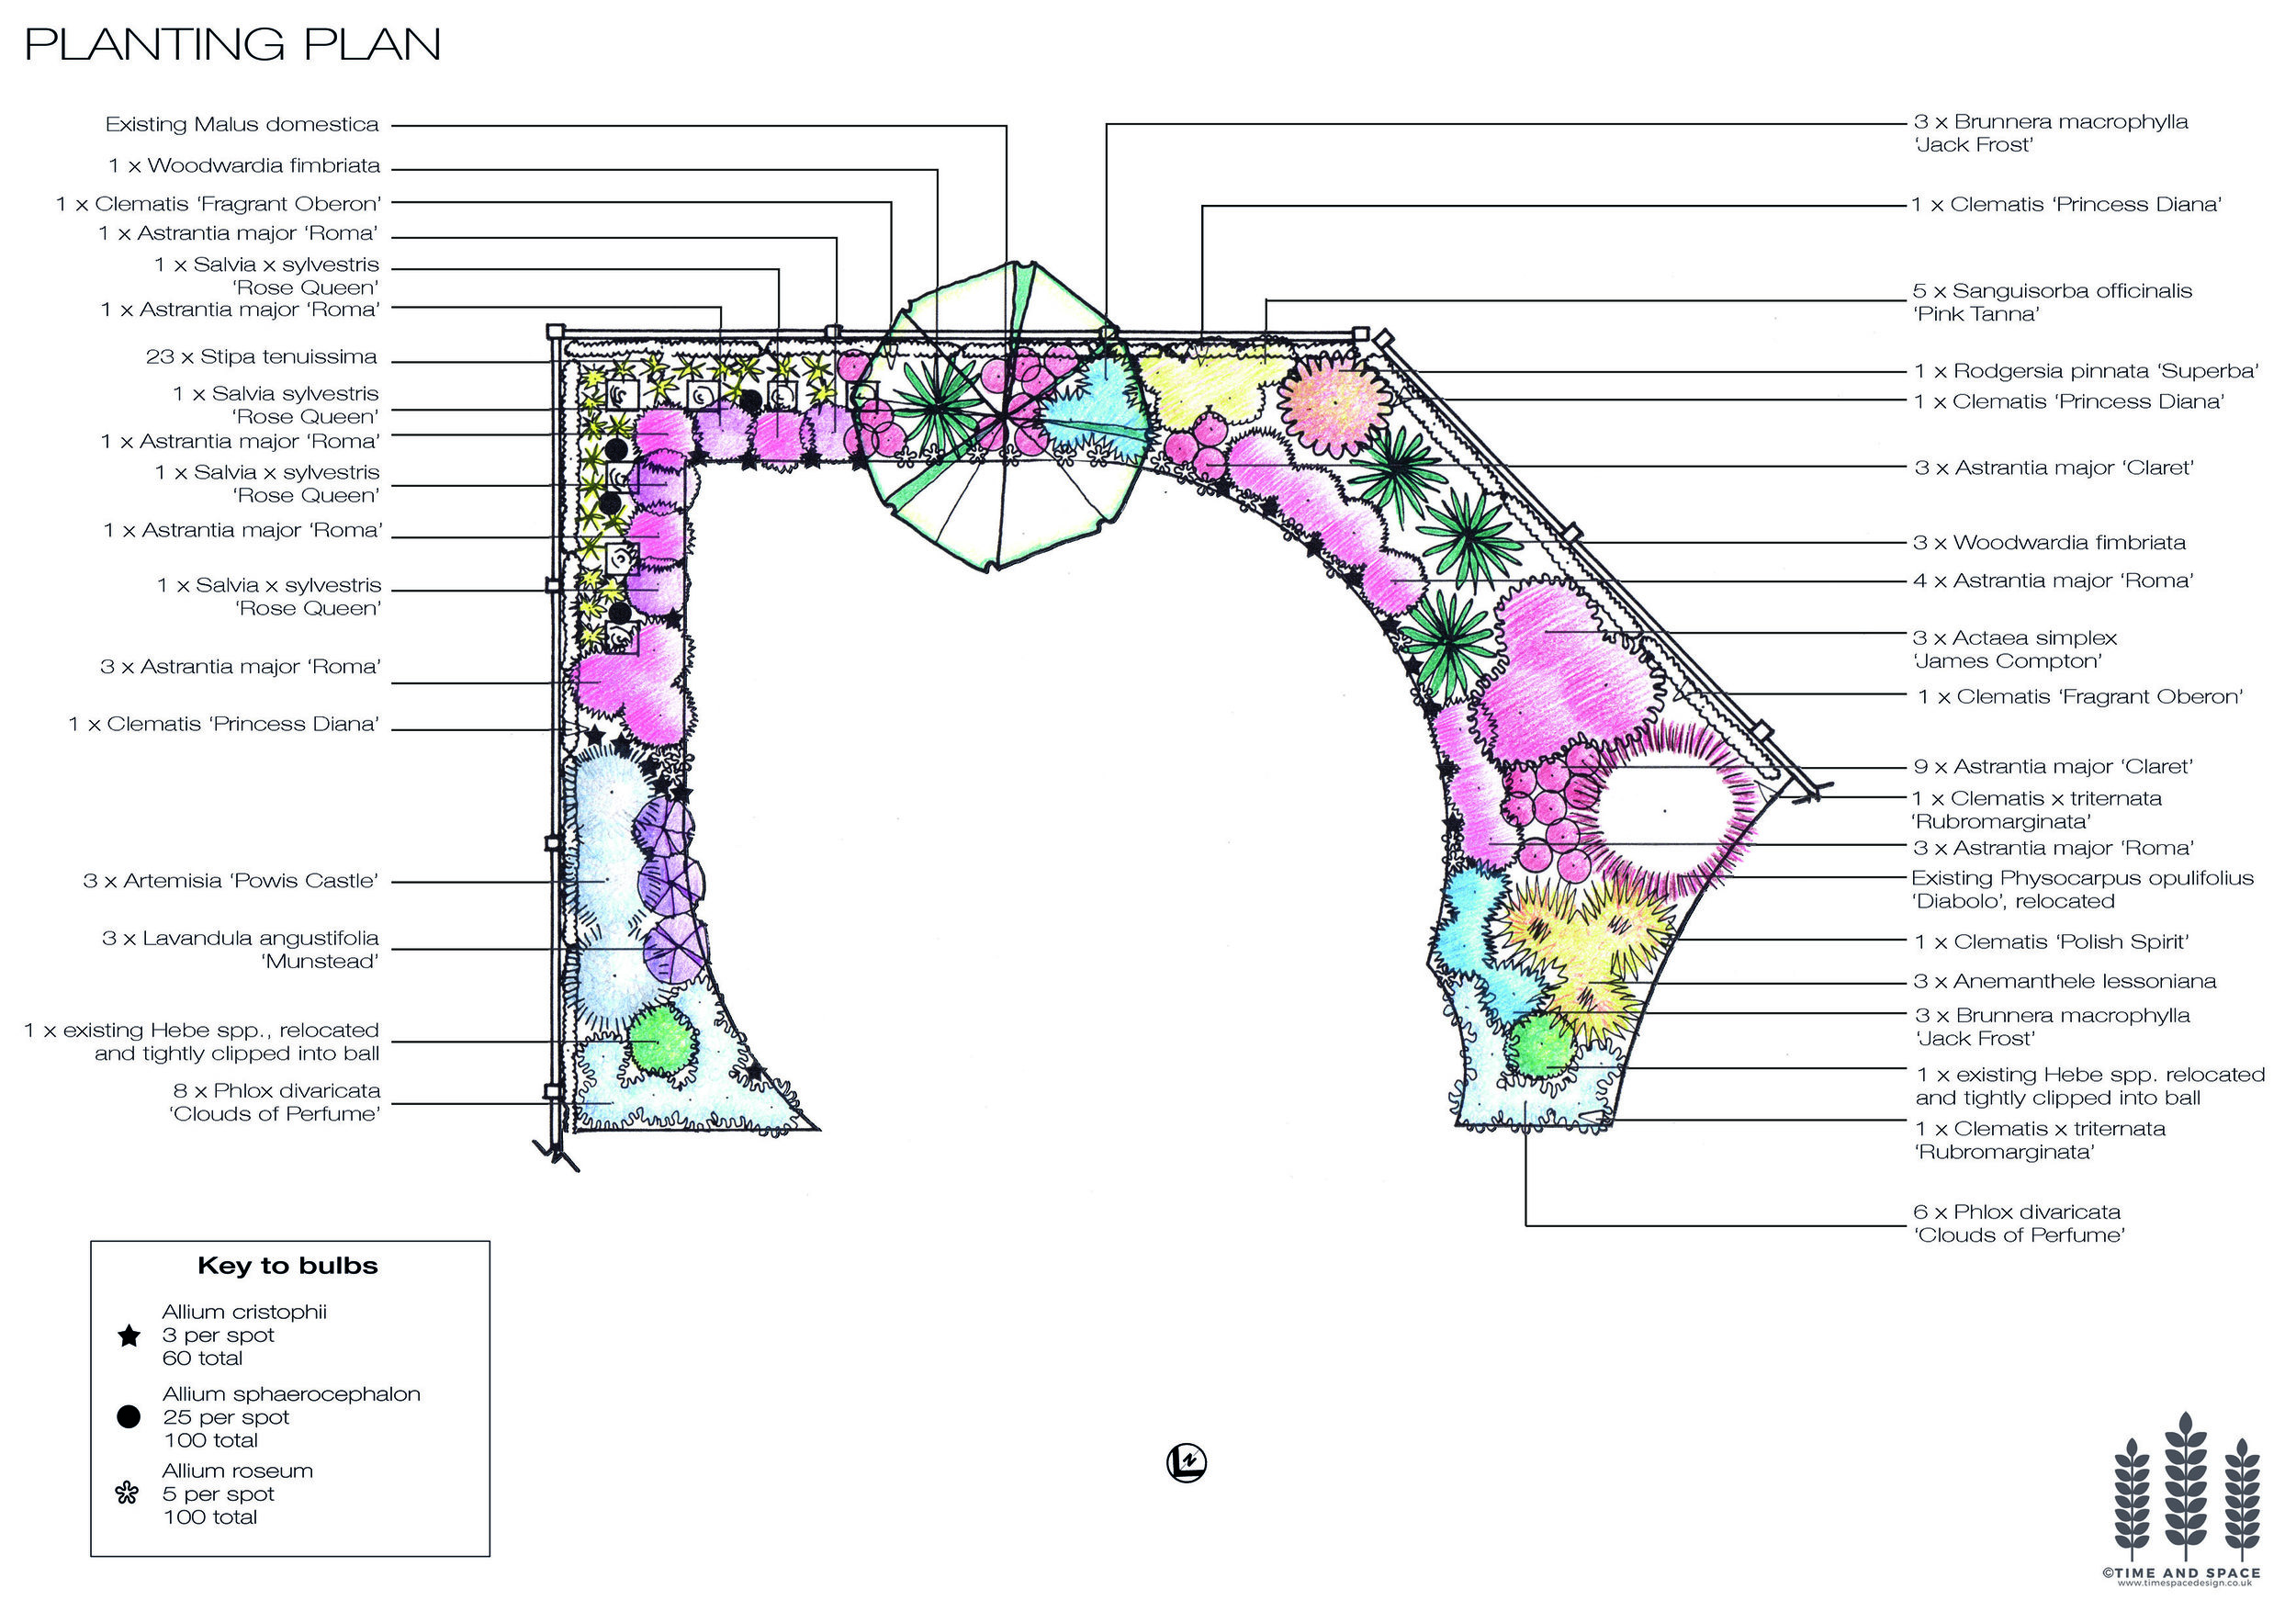 v7.0 29 Kerver Lane Planting Plan colour version.jpg